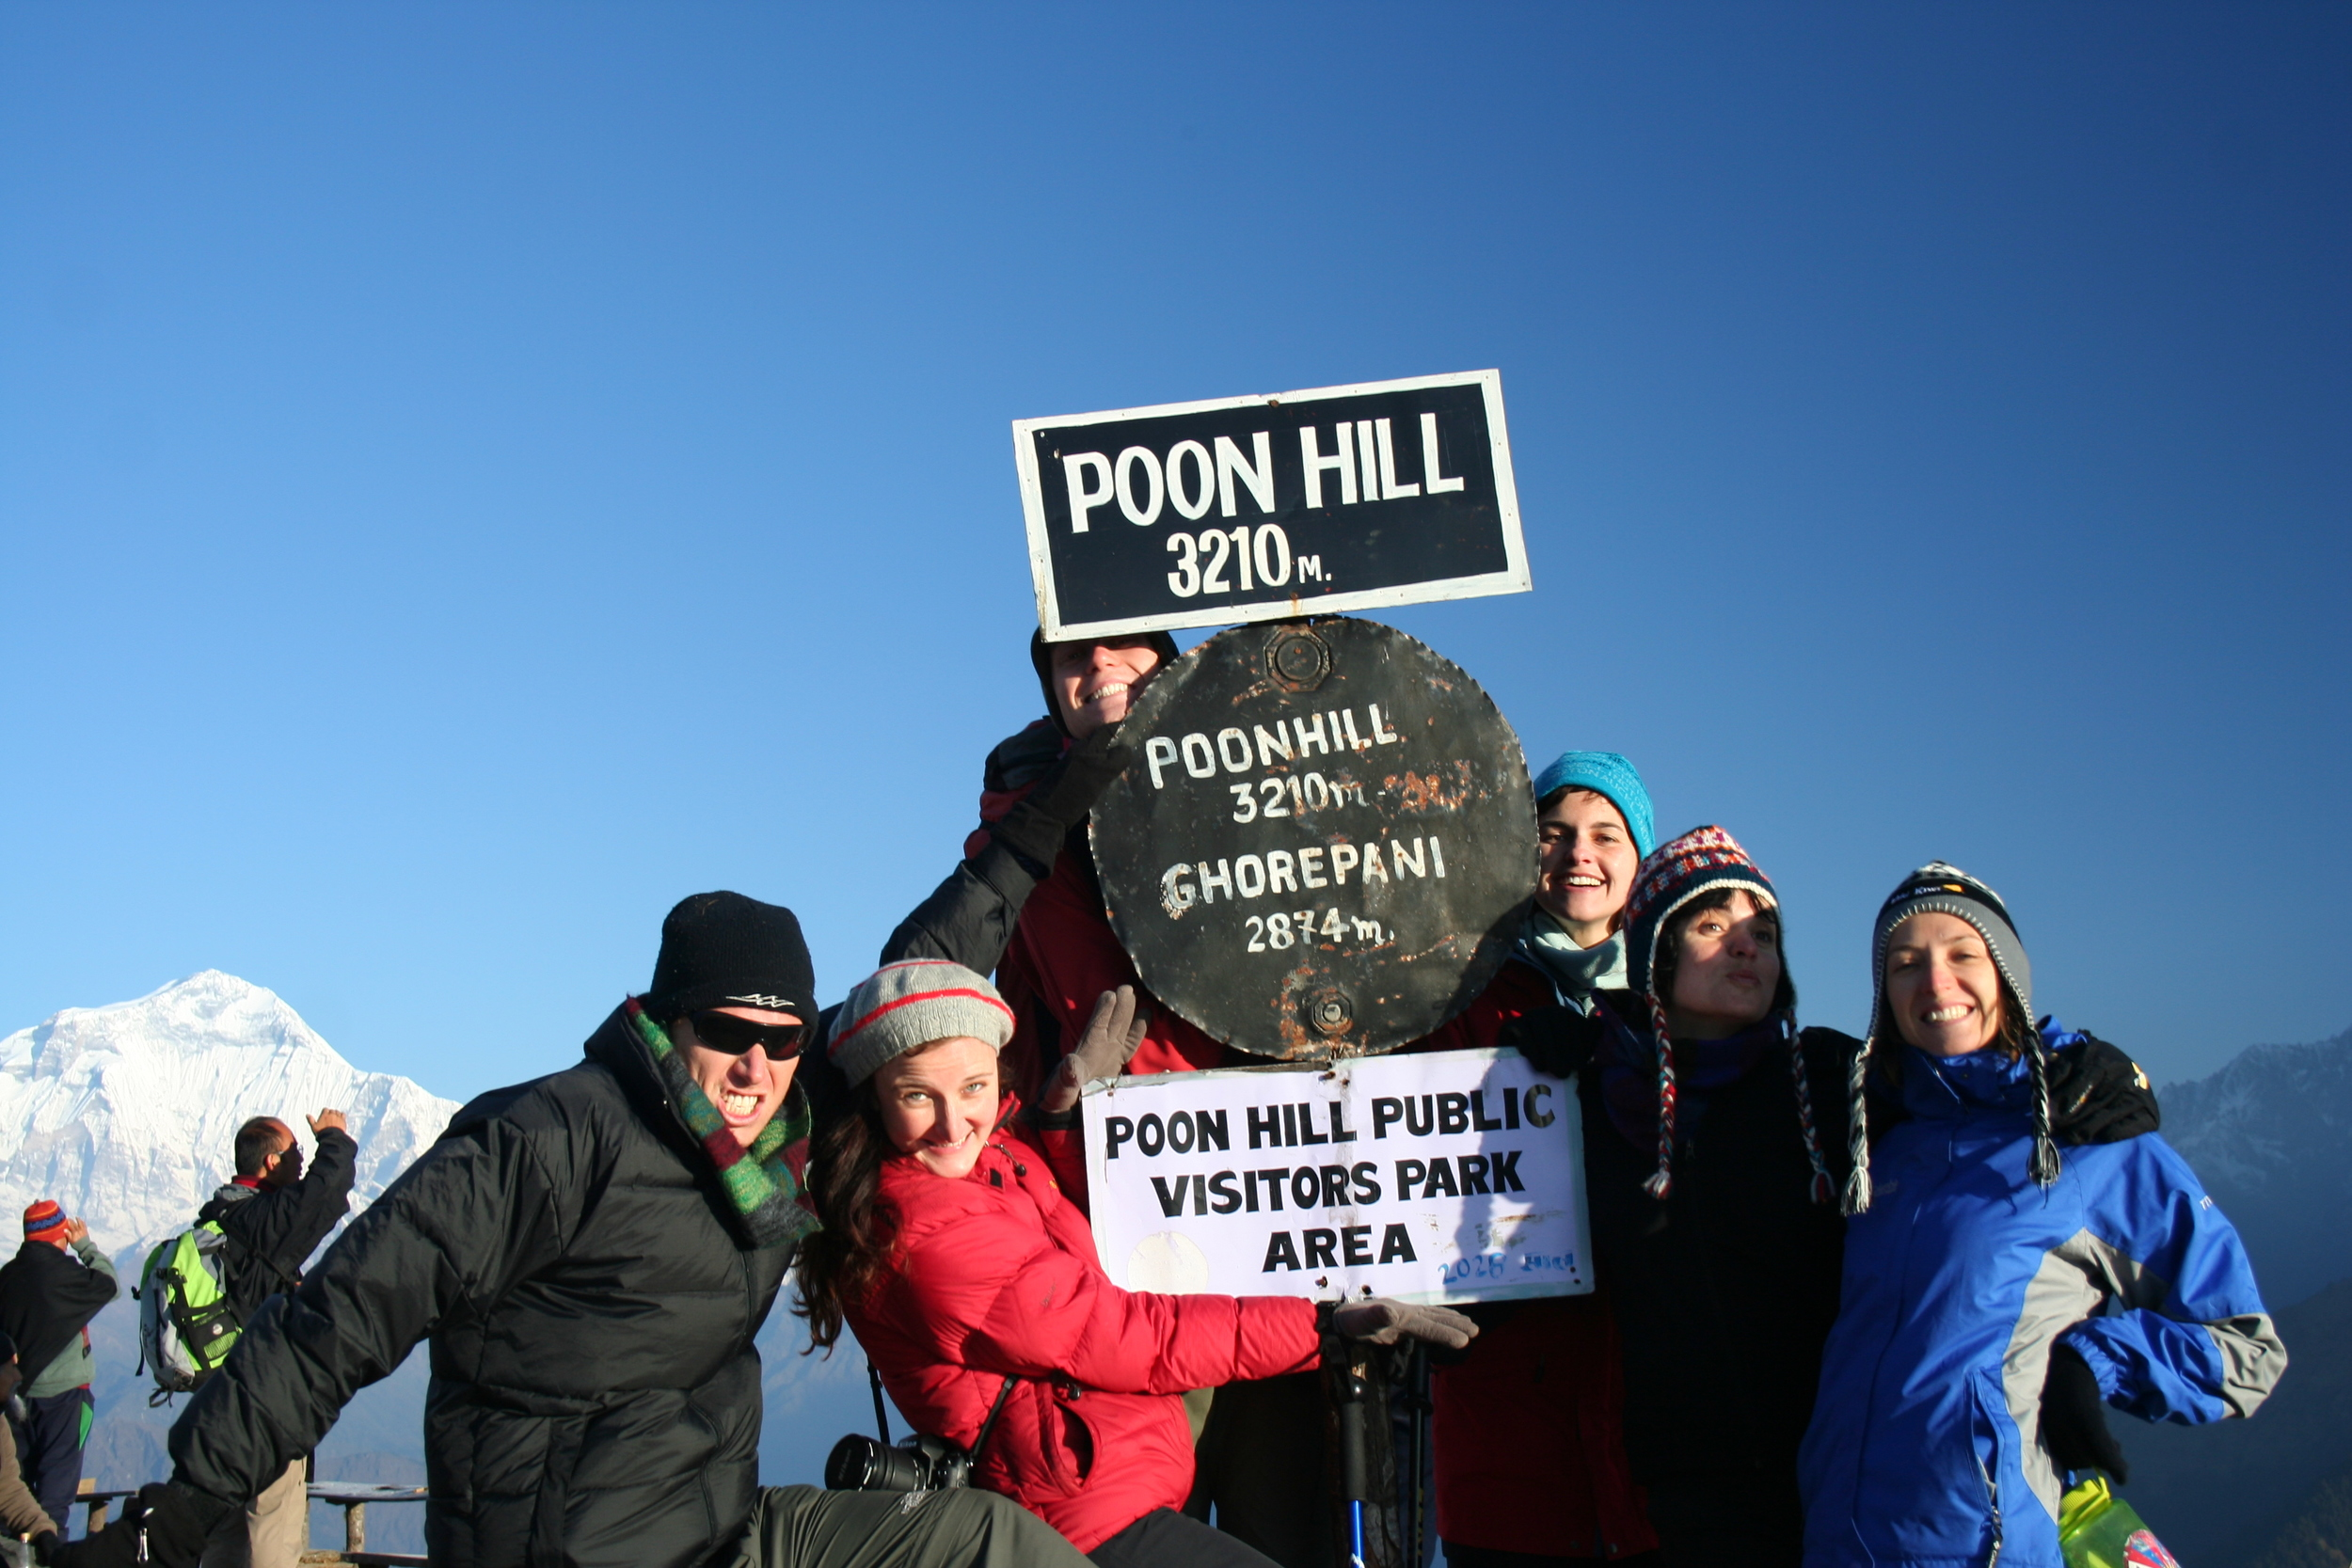 Aussies being ... Aussies. On Poon Hill, Nepal.